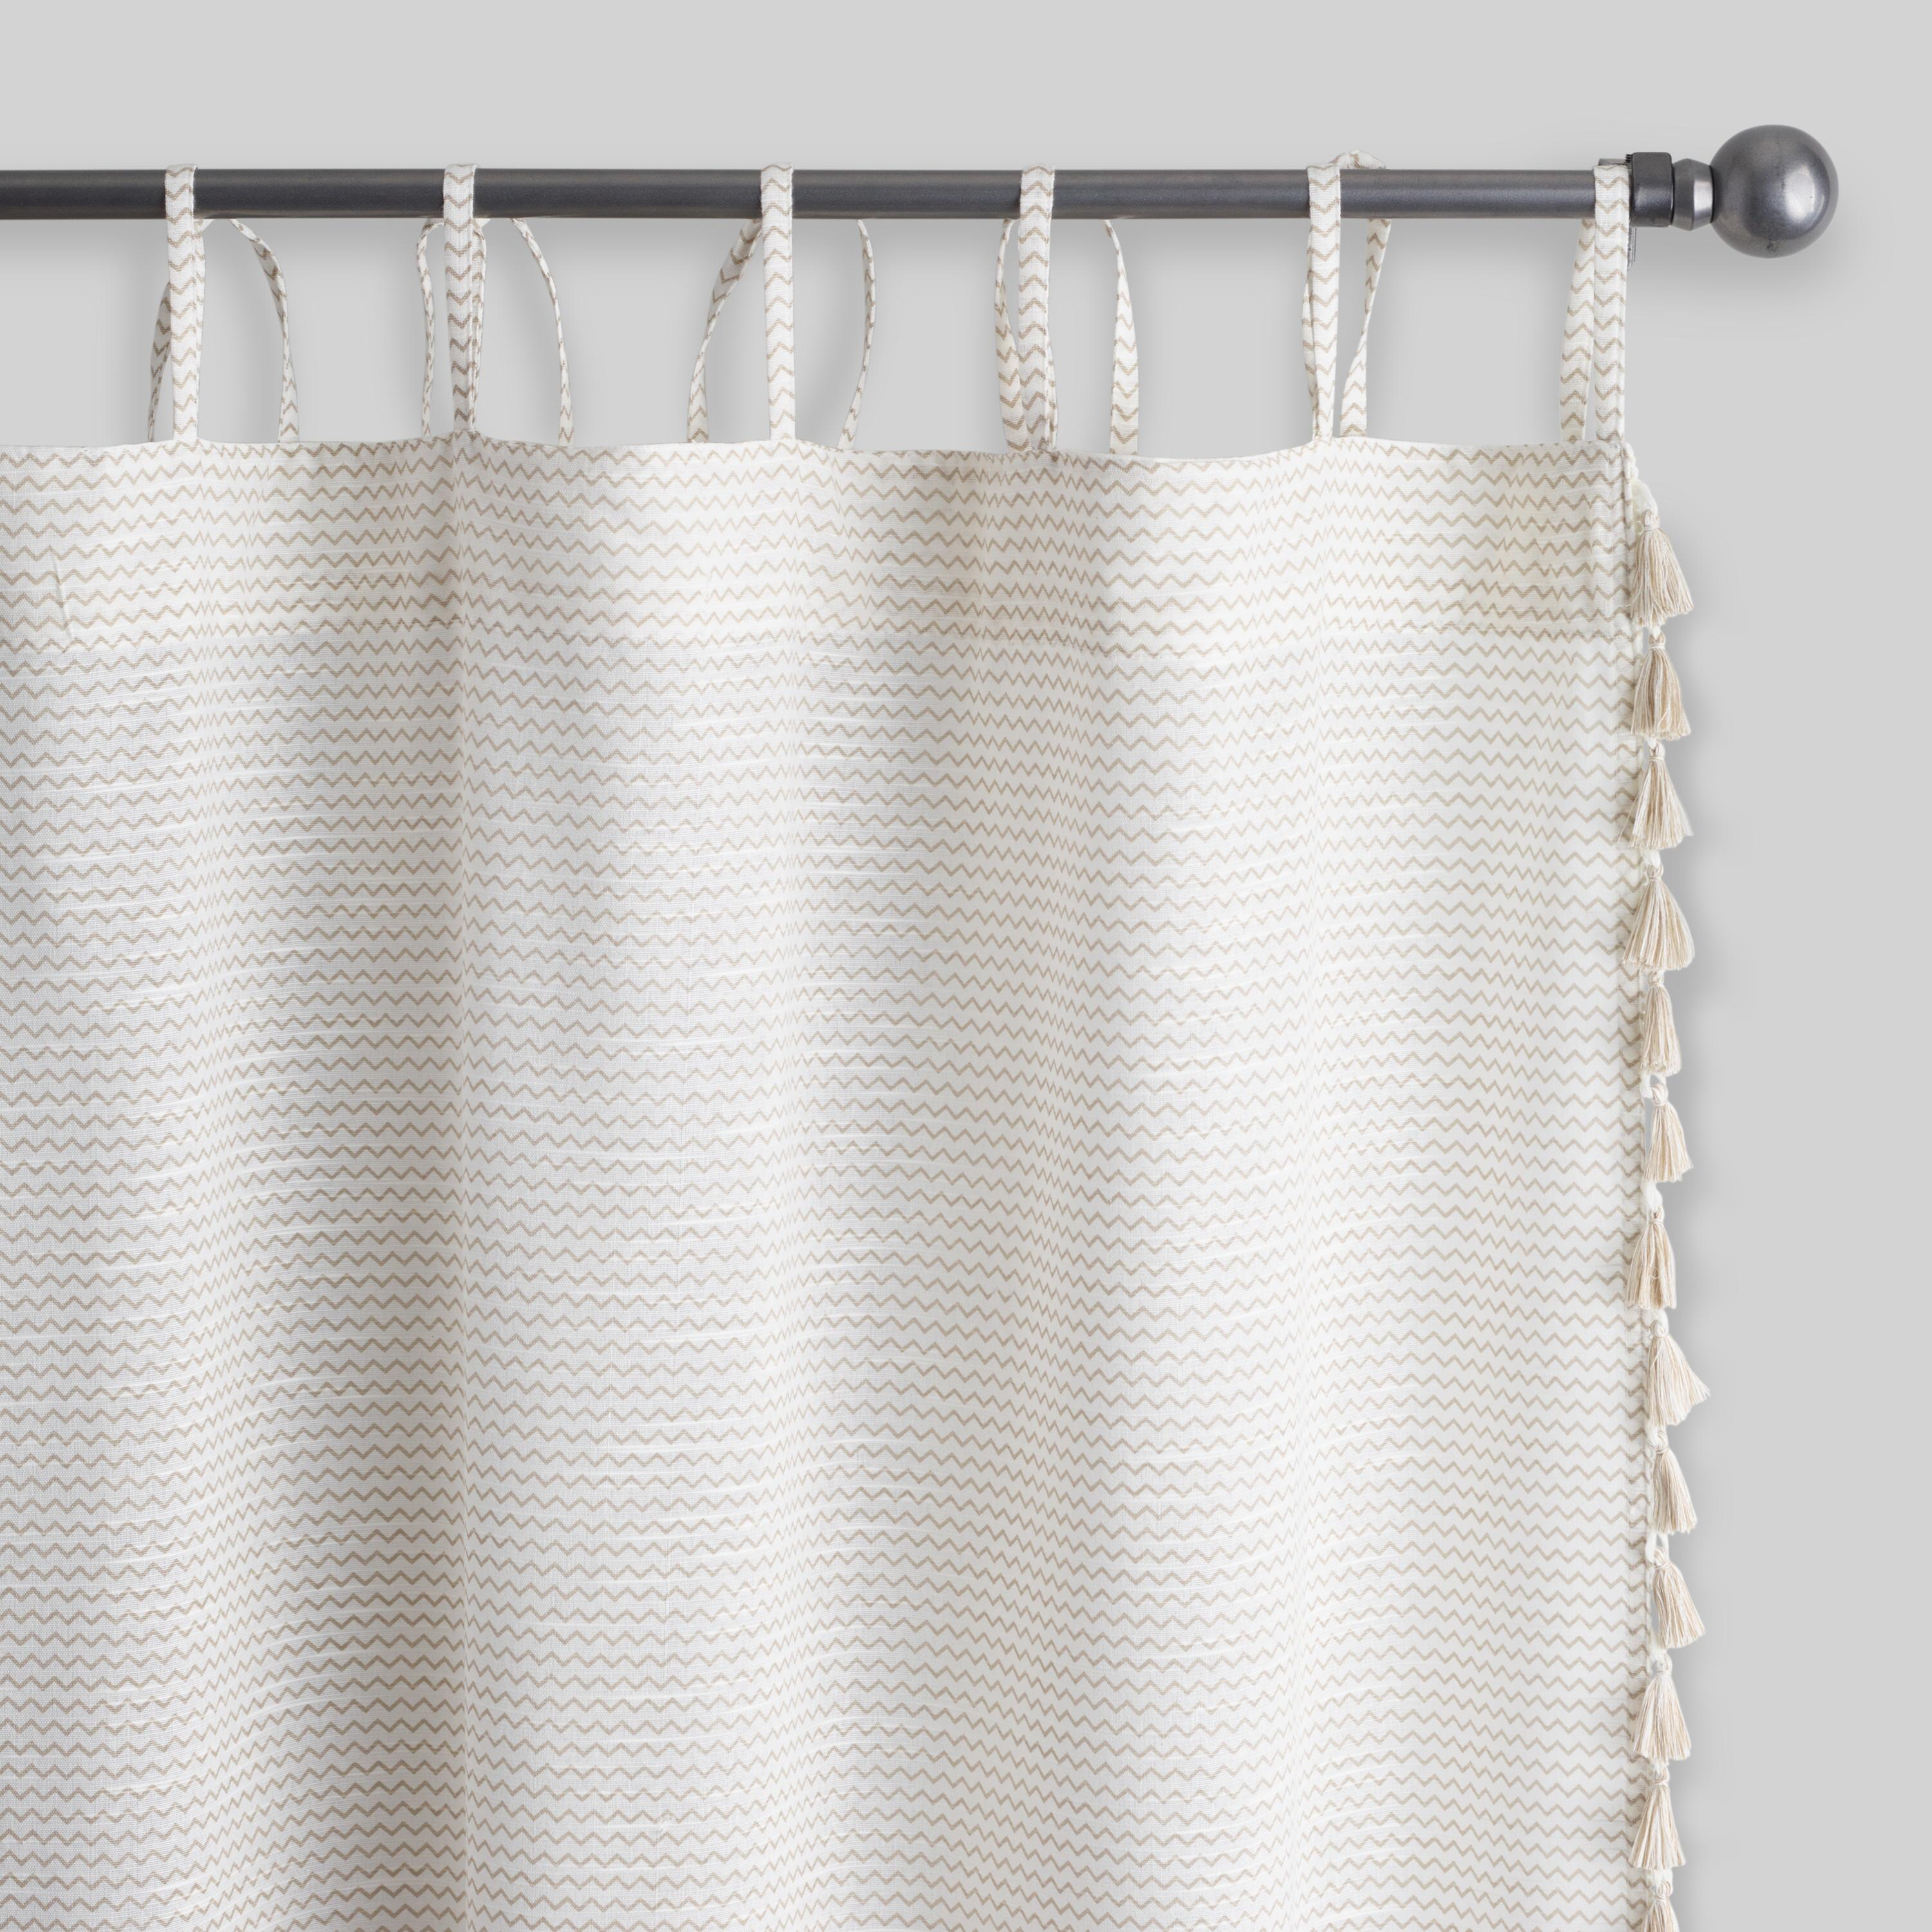 Zigzag Print With Tassels Tie Top Curtains Set Of 2: White